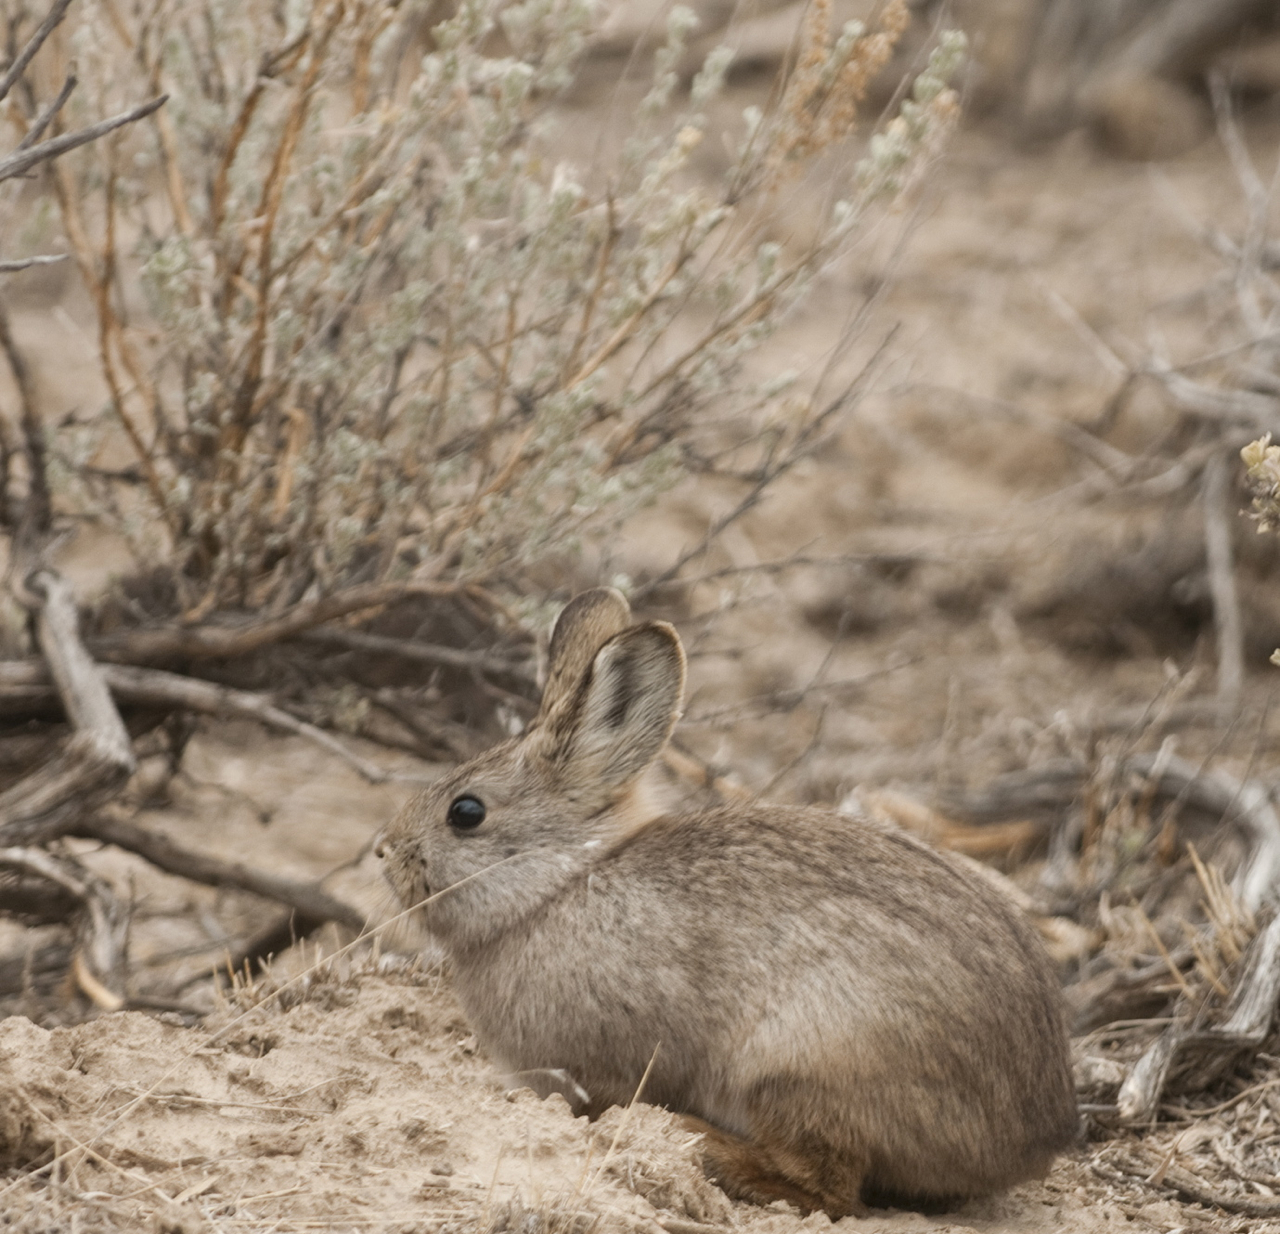 bunny outside near sagebrush